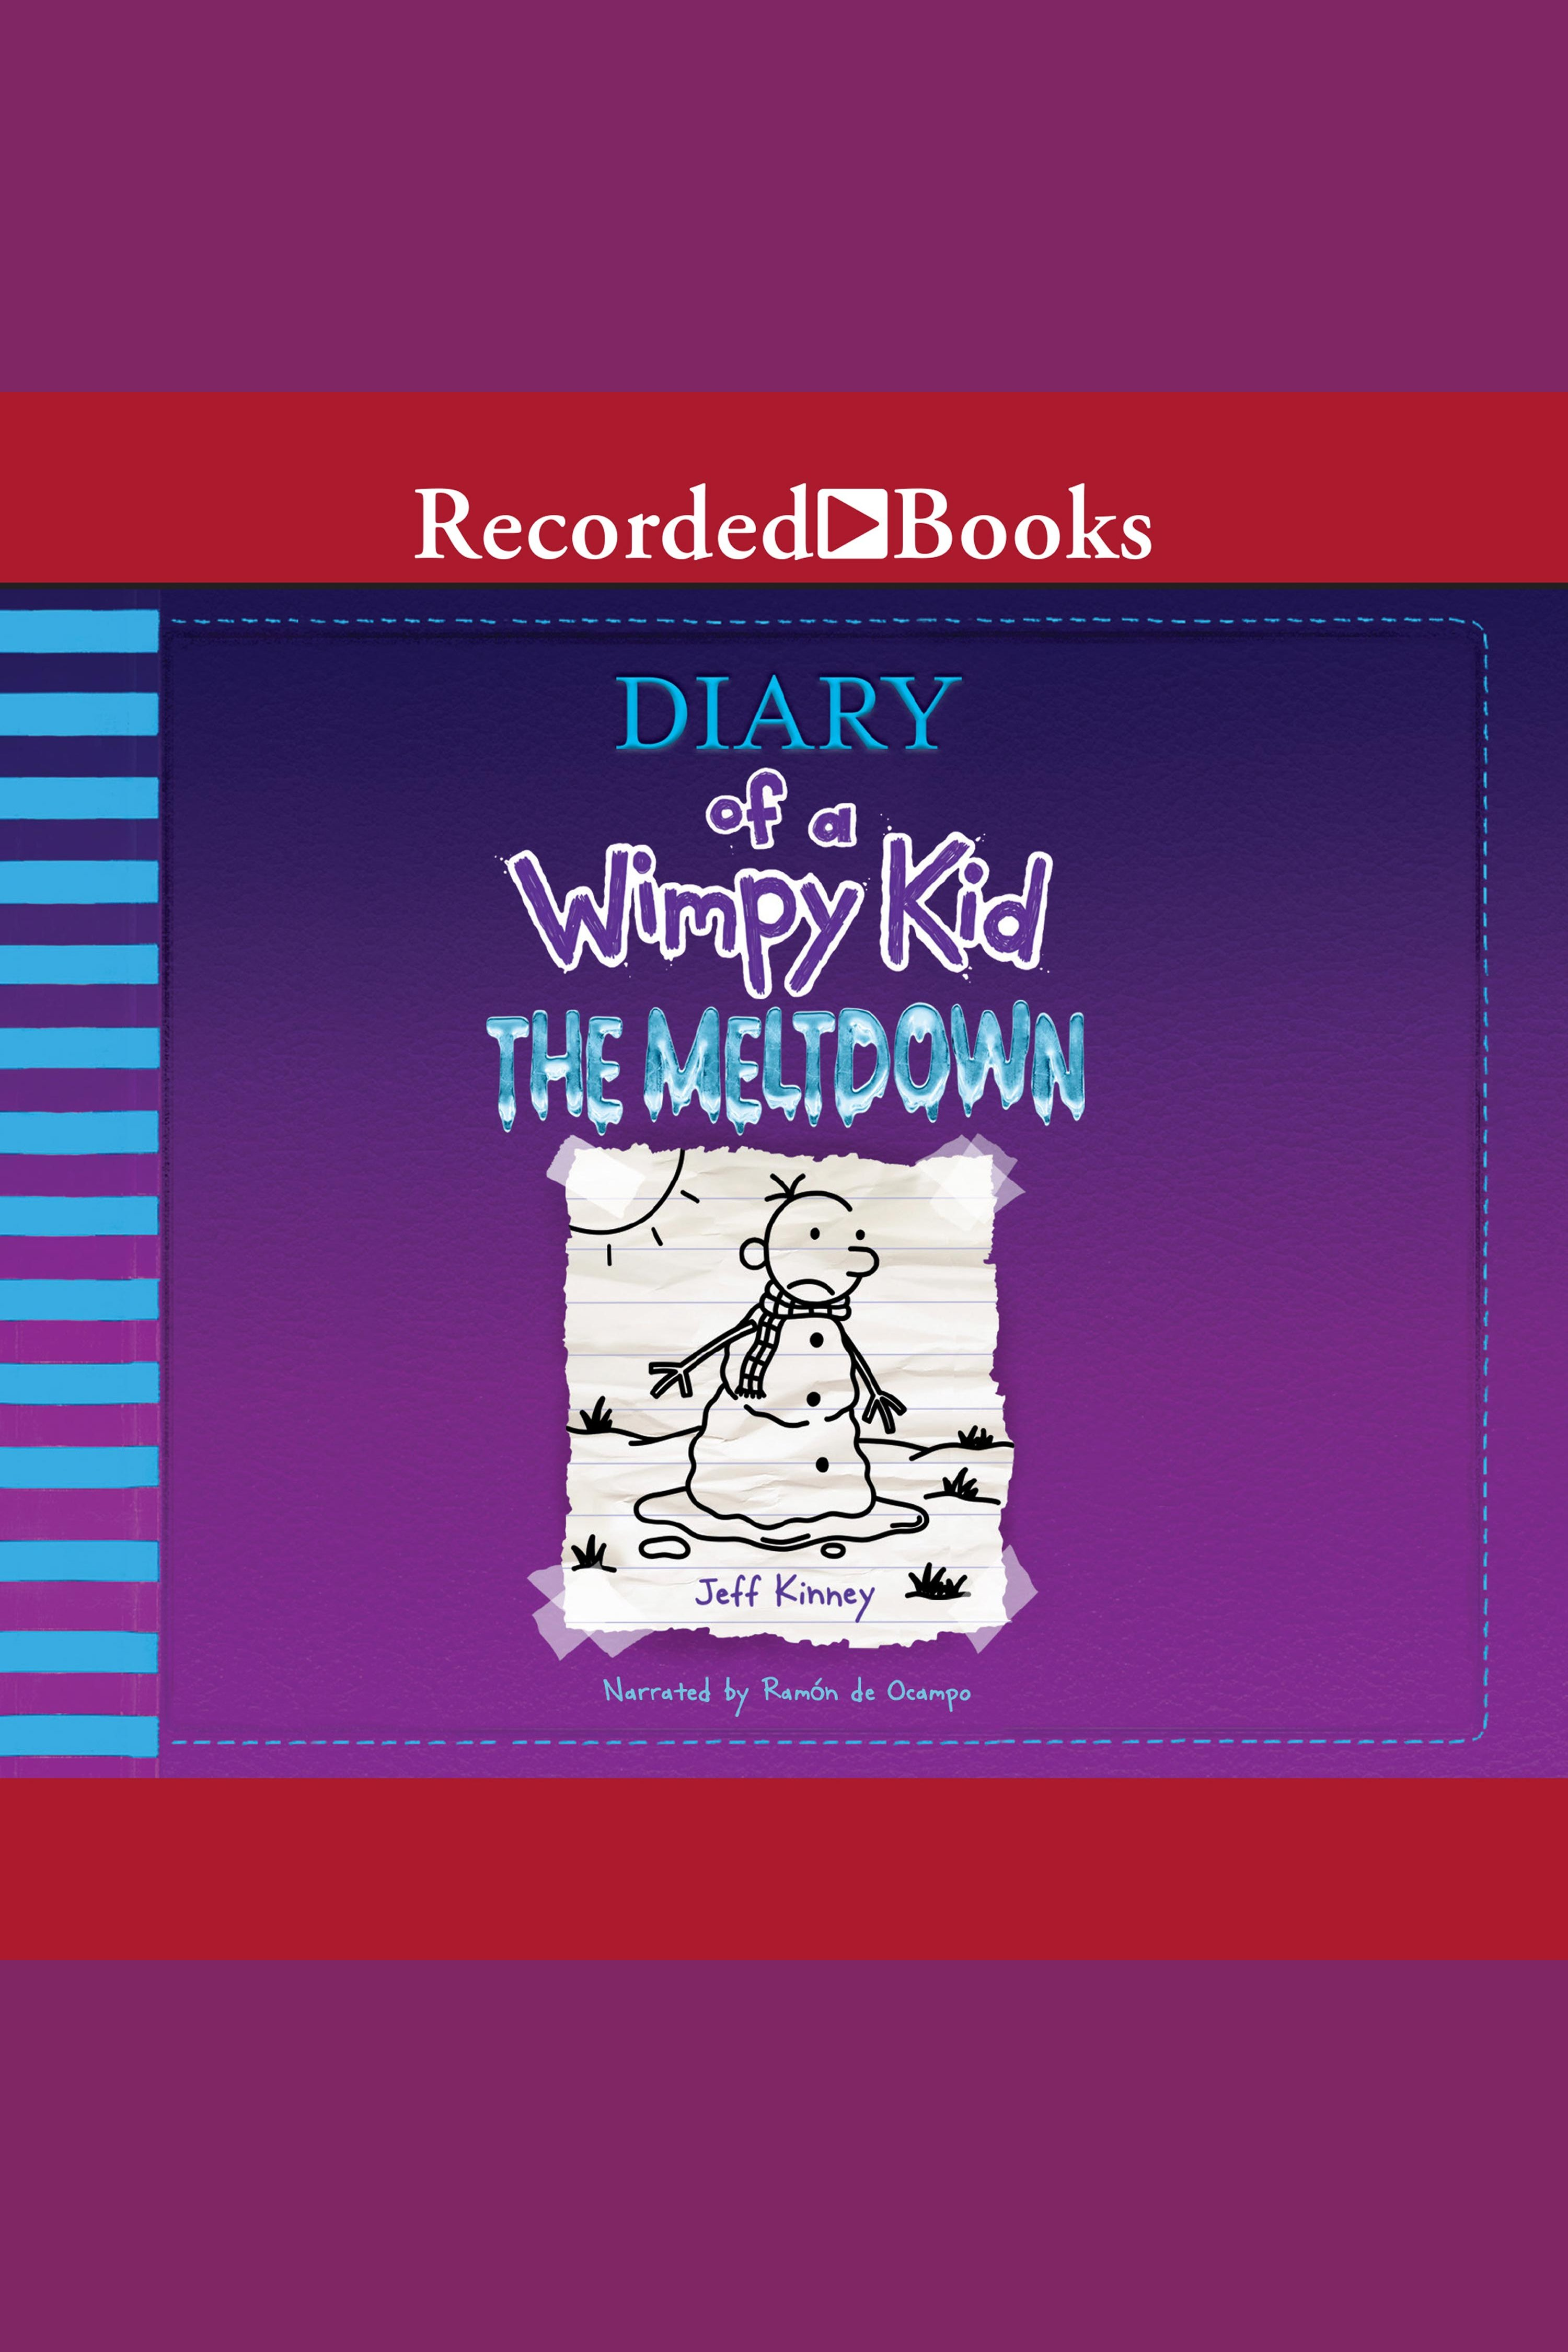 Cover Image of Diary of a Wimpy Kid: The Meltdown